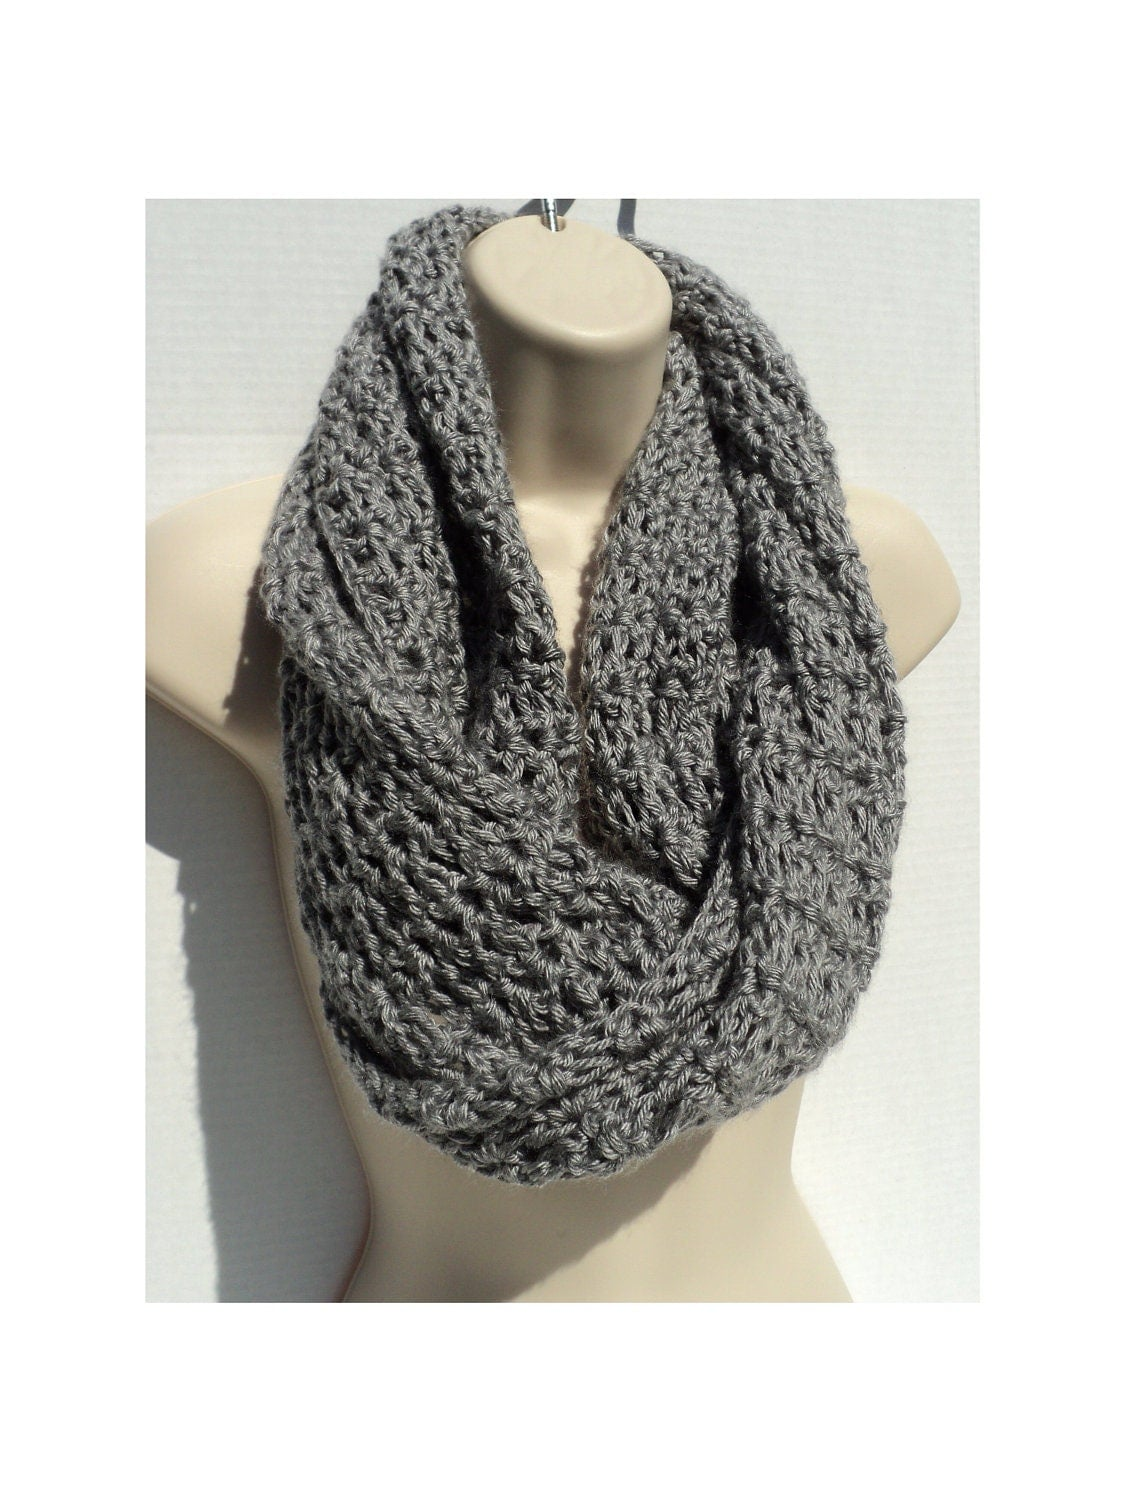 Crochet Pattern Celestial Neck Scarf From The Scarves Free ...